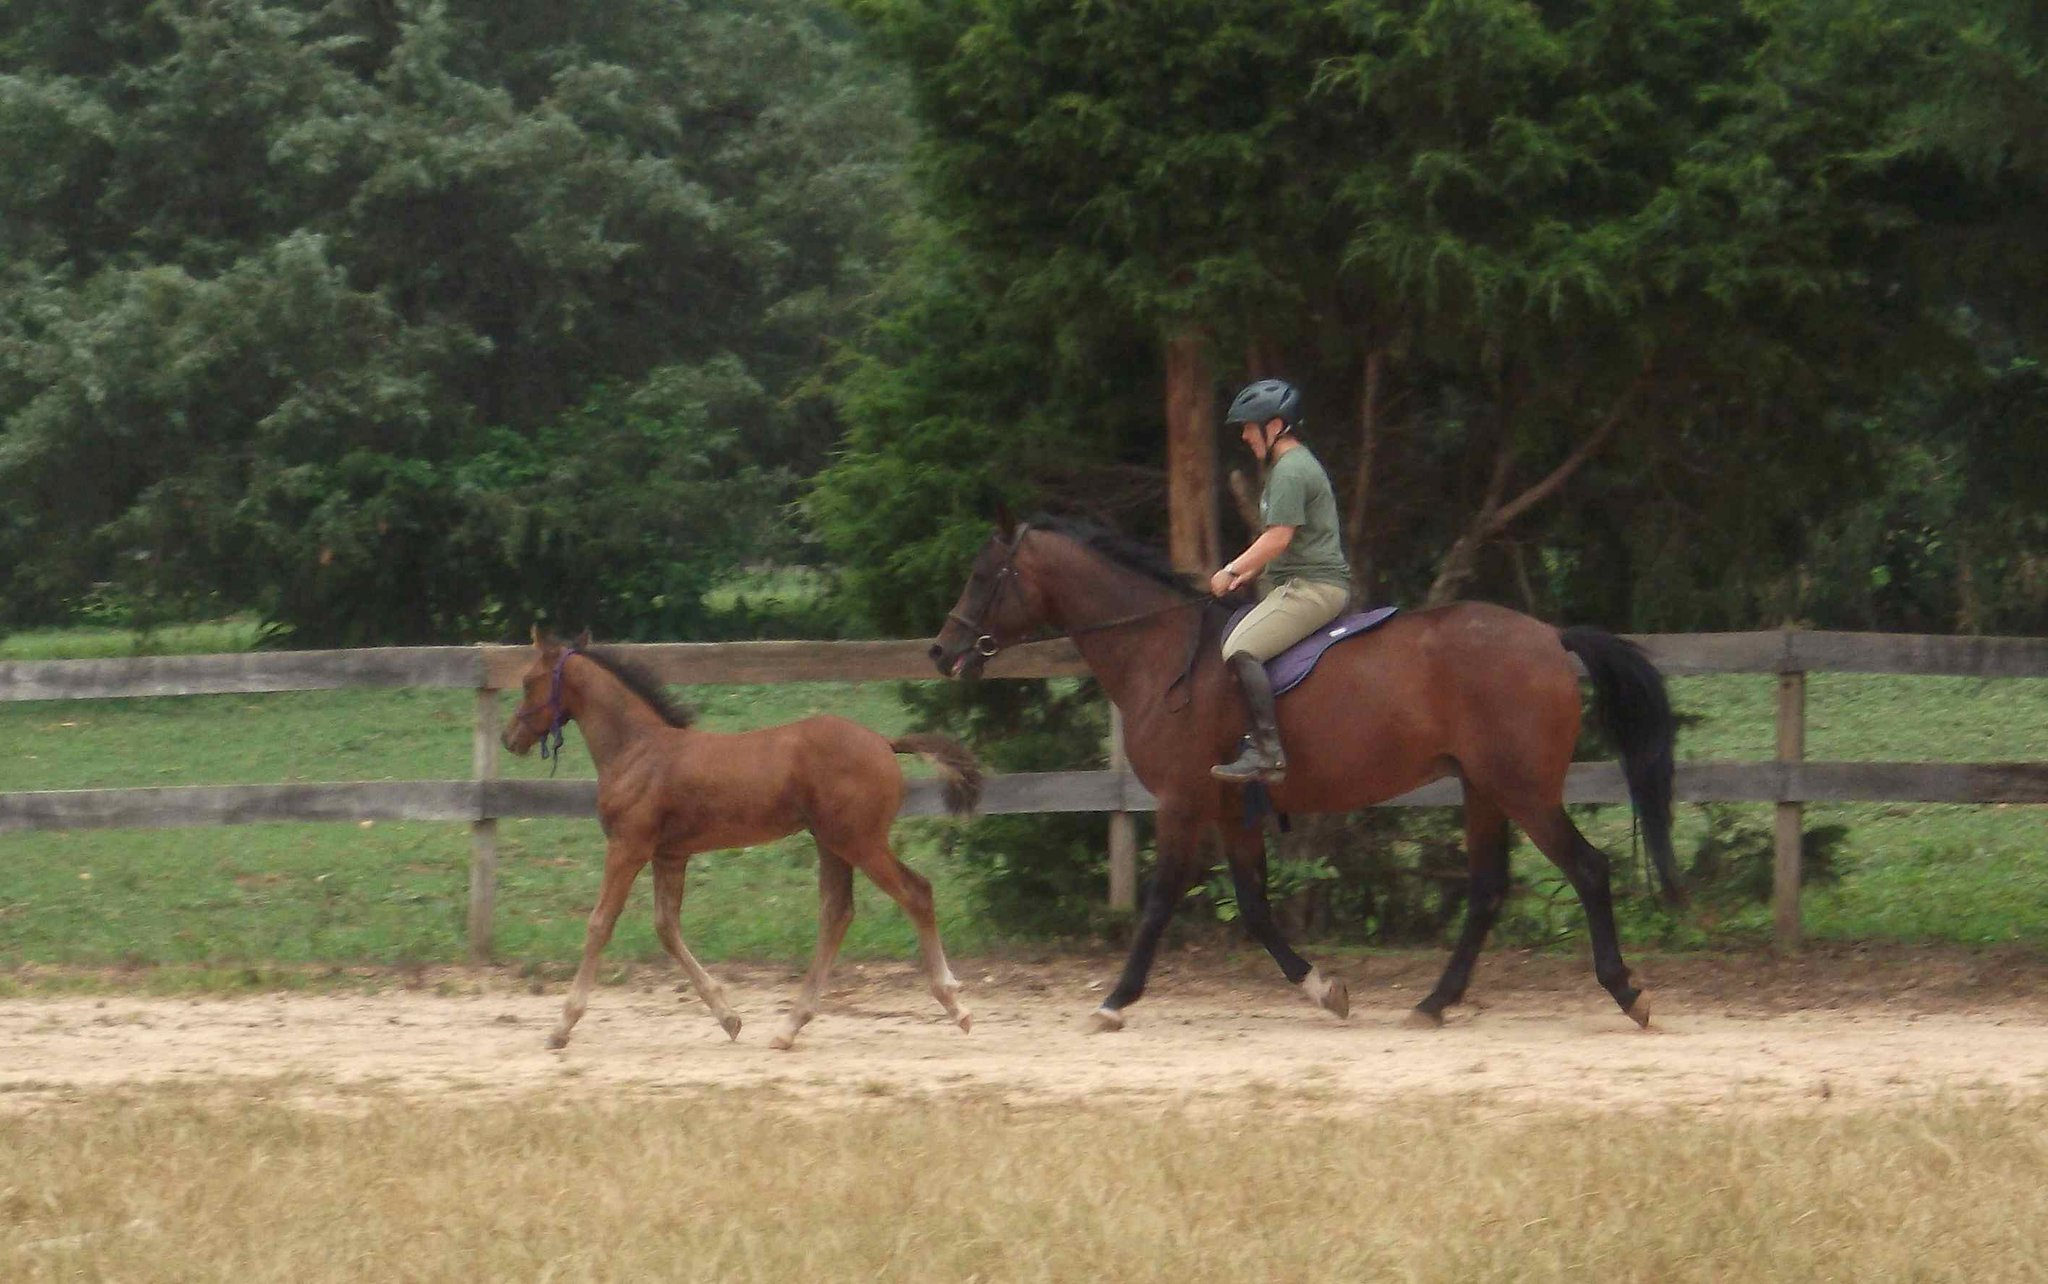 Juliette with foal Q Xoshi Tempest